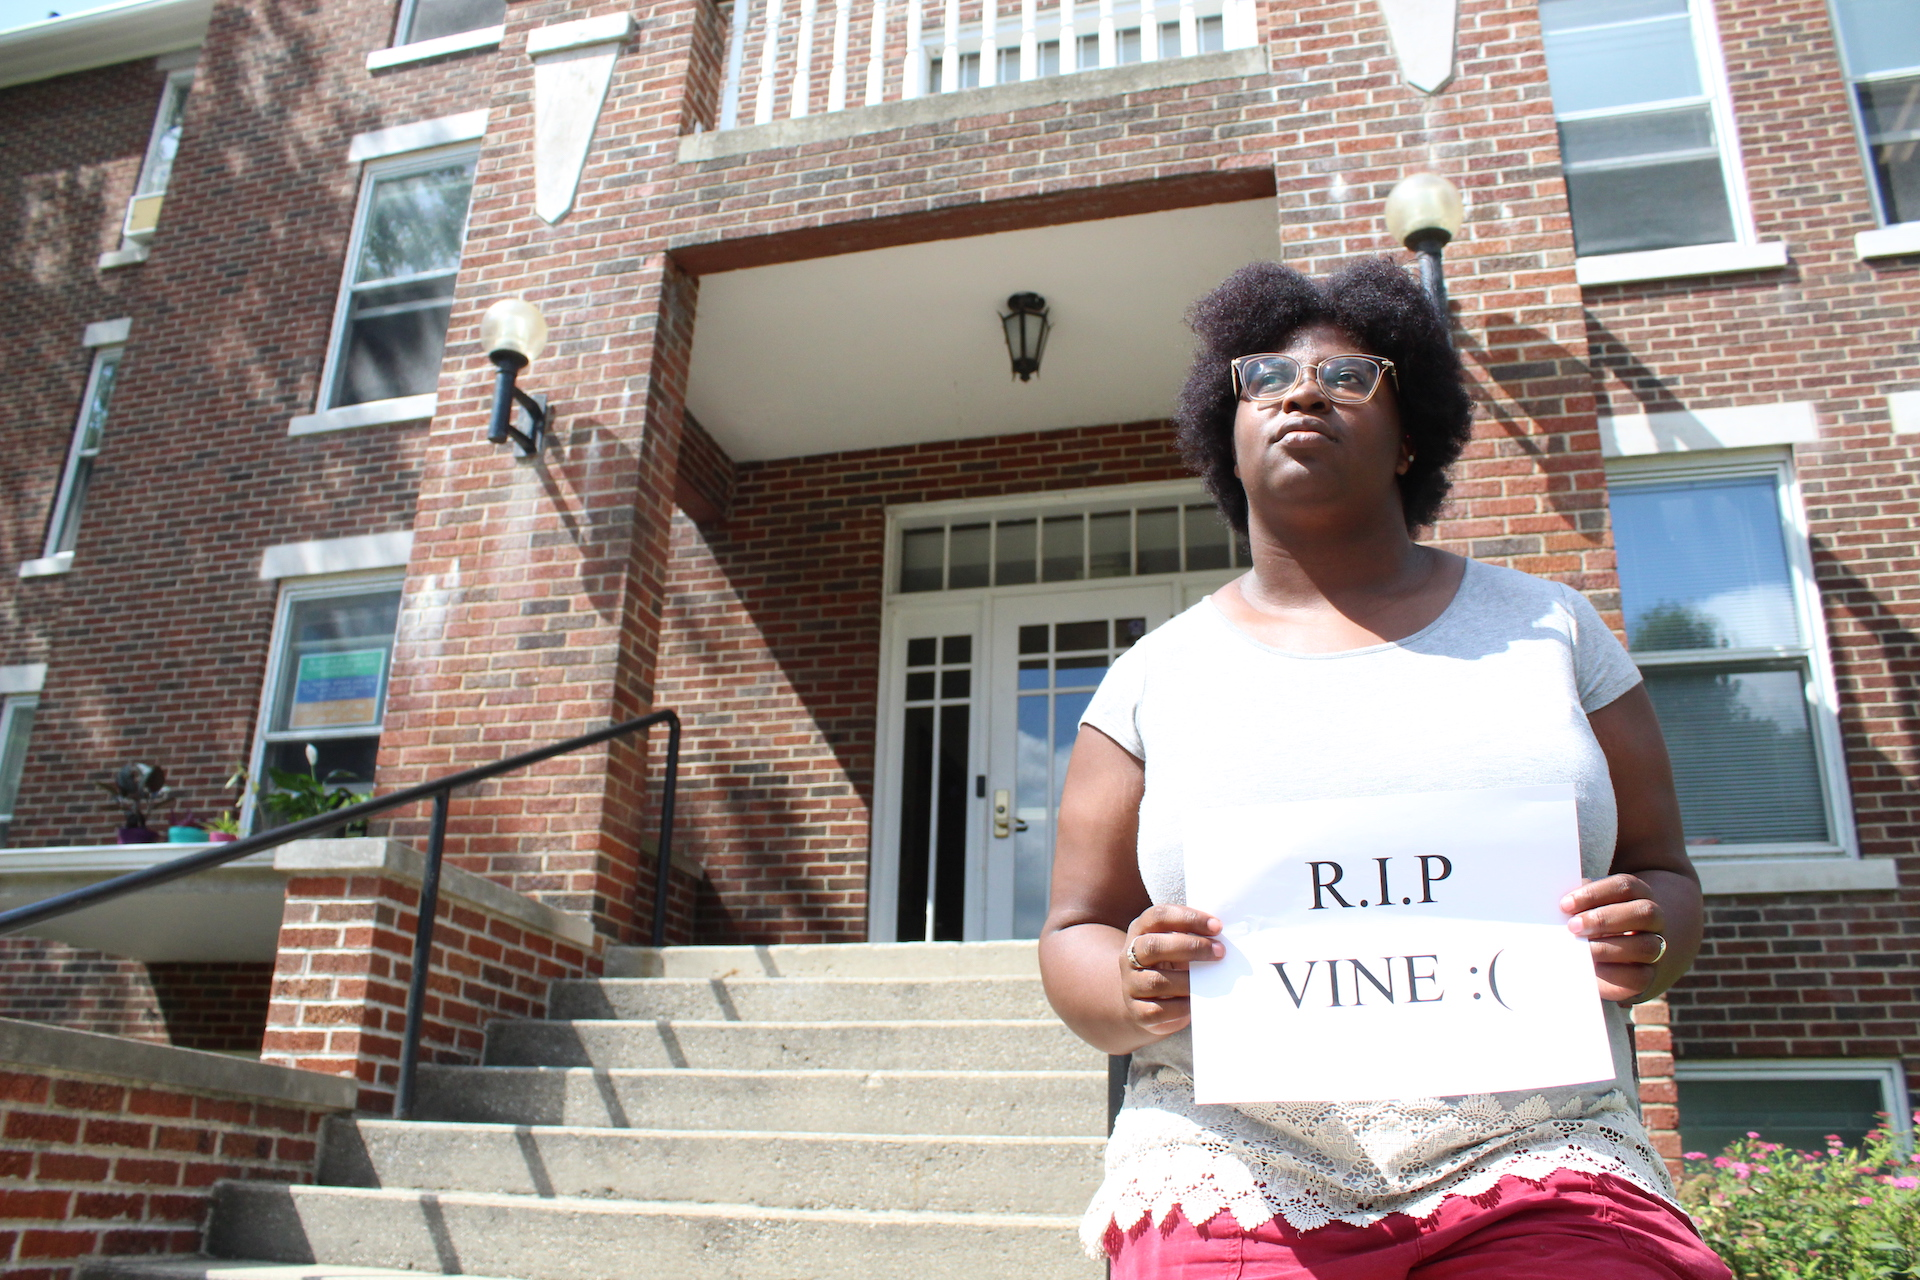 """A student stands outside Kulp Hall with a sign reading """"R.I.P. VINE"""""""